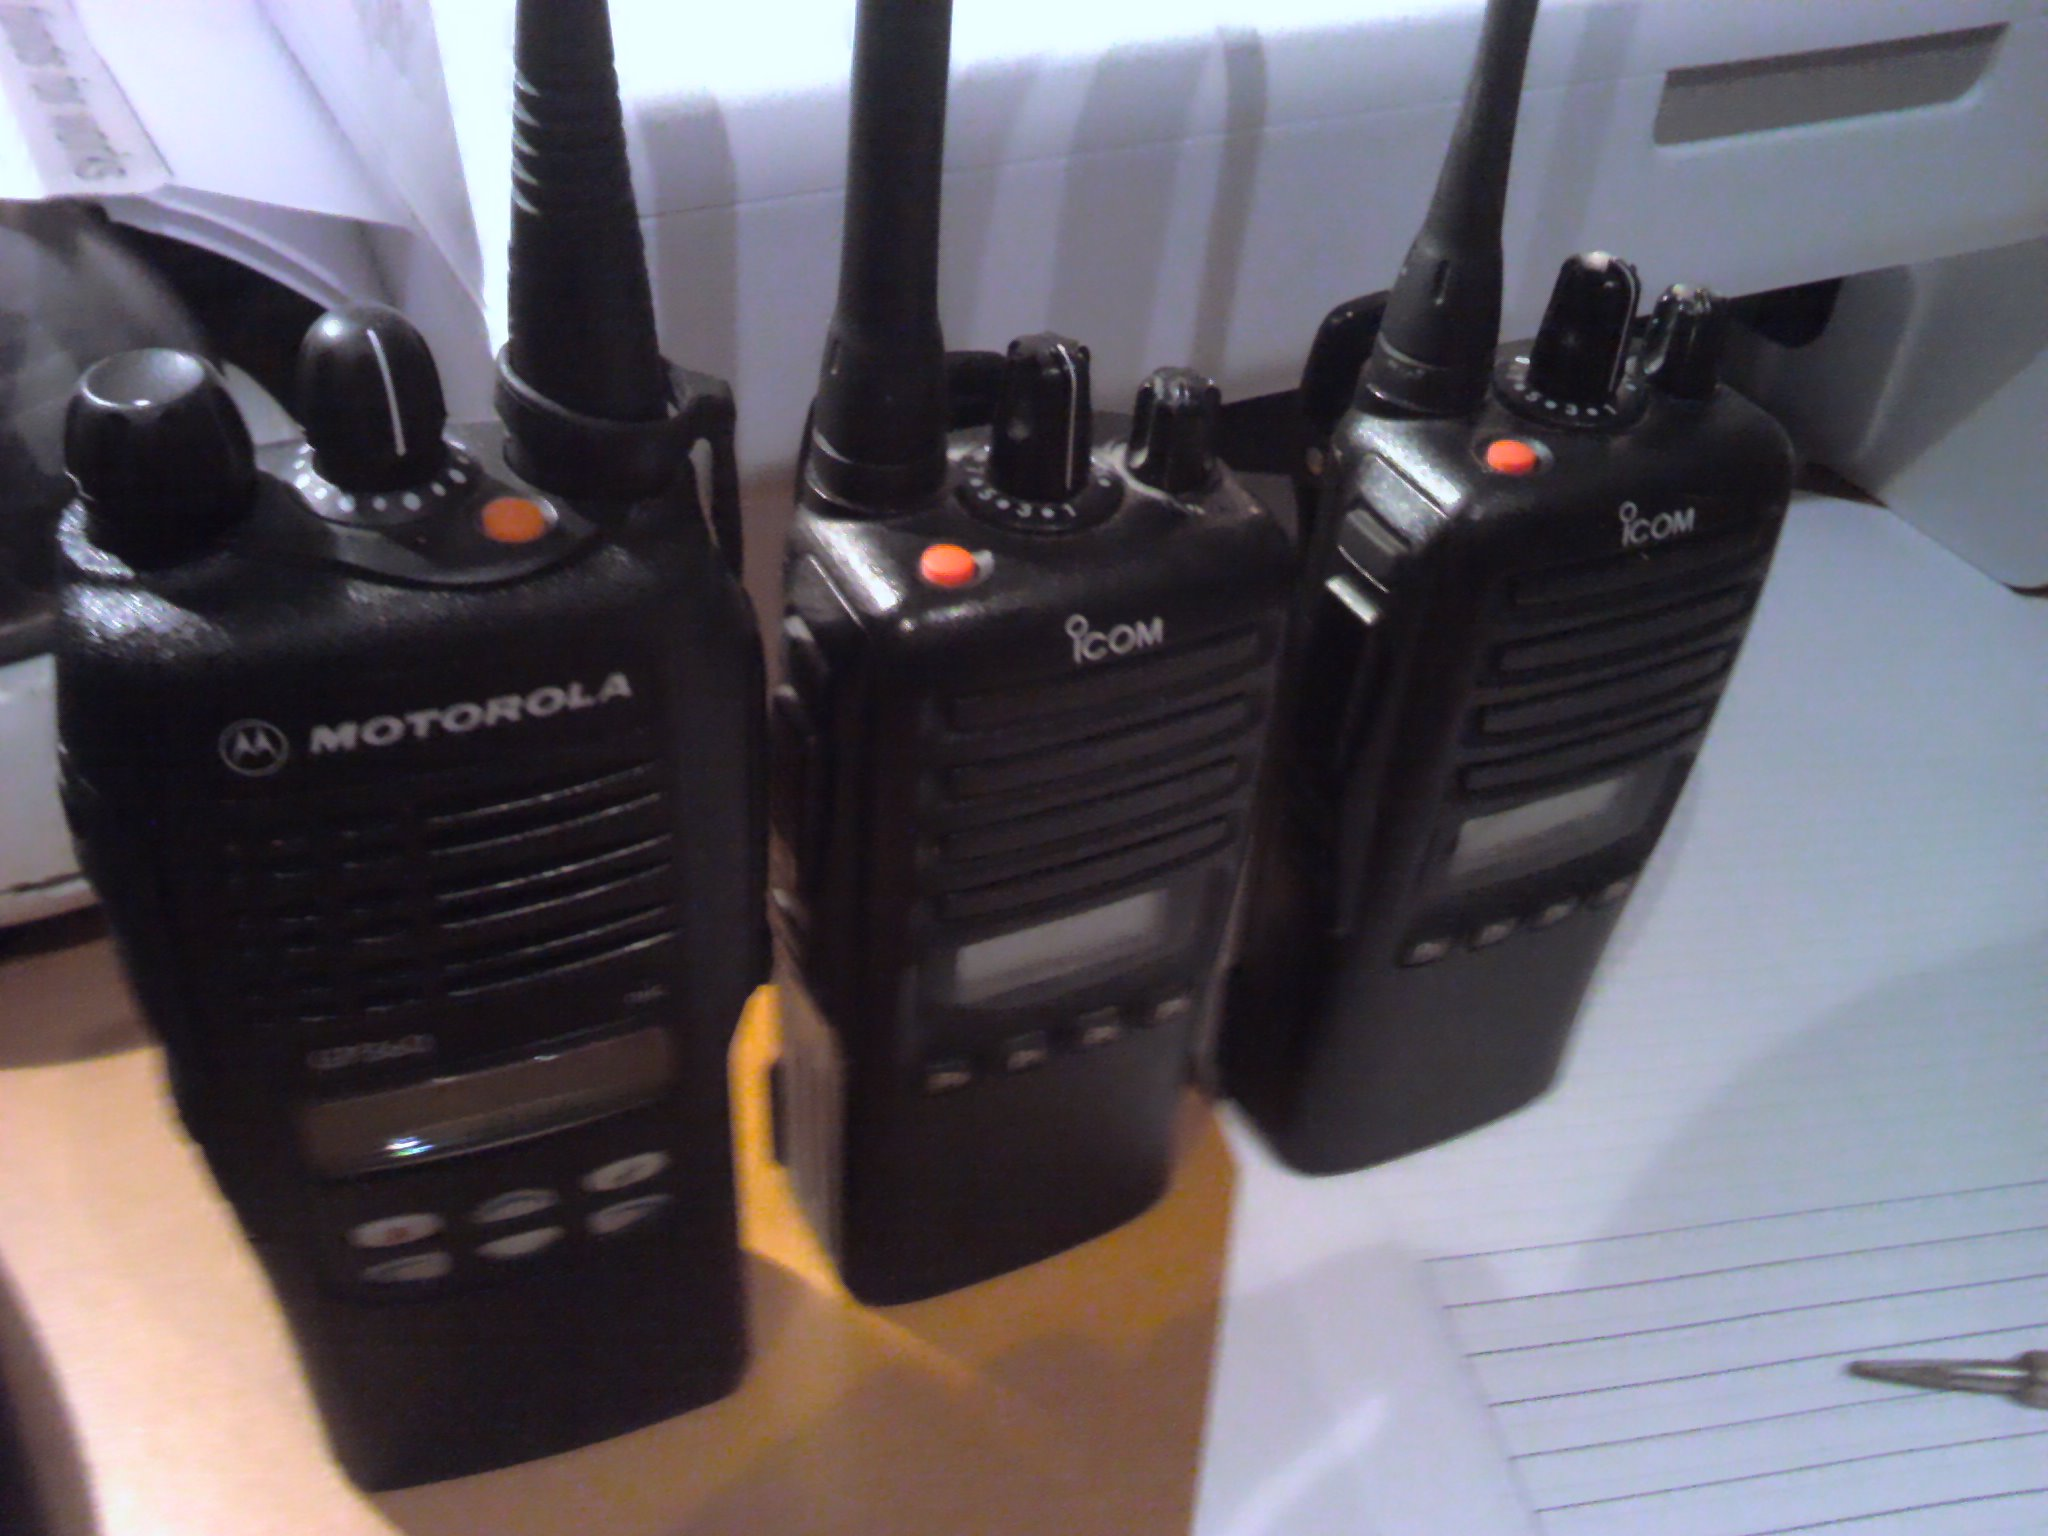 Motorola Gp360, Icom F34GS and F44GS